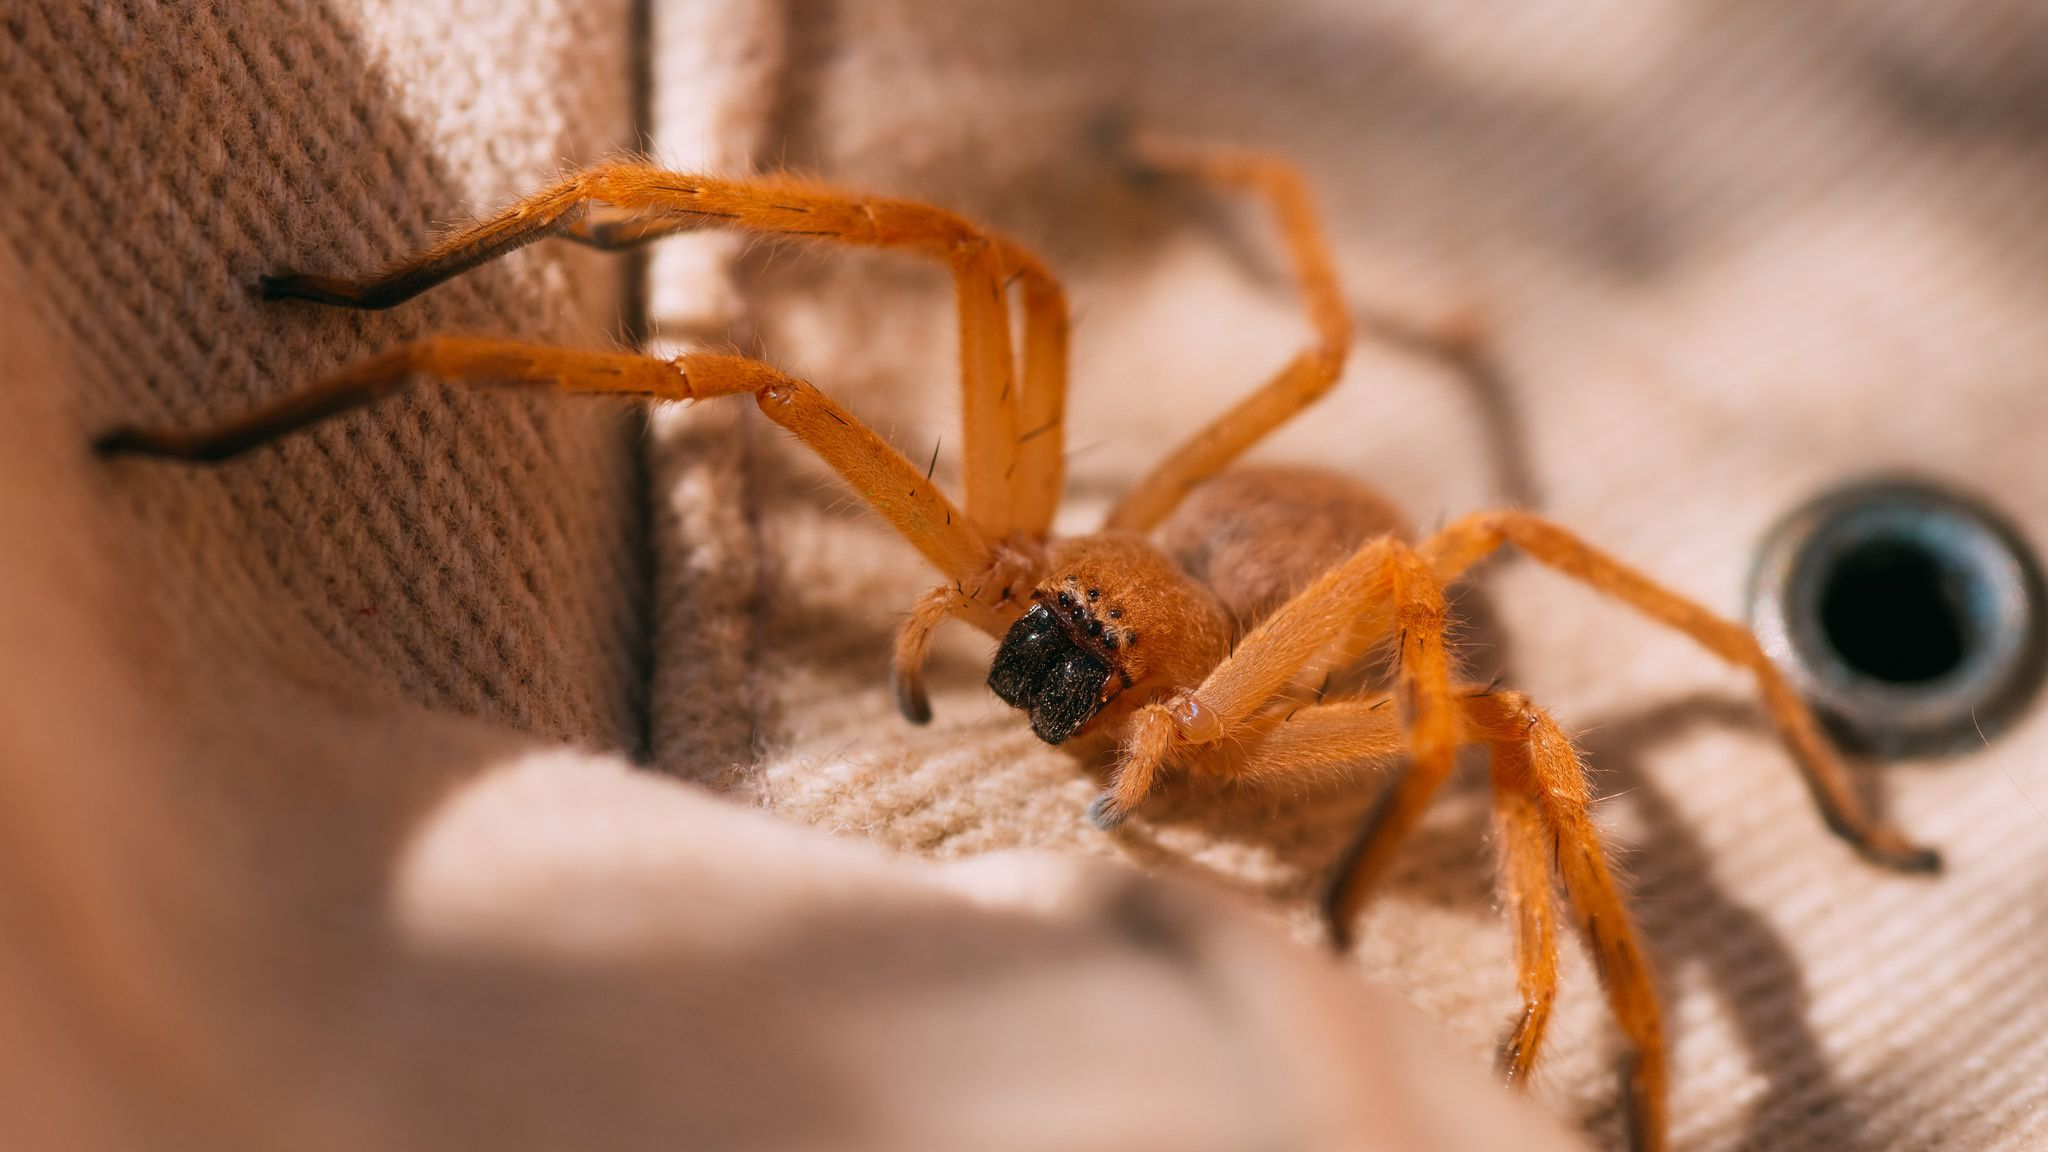 How To Get Rid of Hobo Spiders 2020 - Image By thespruce